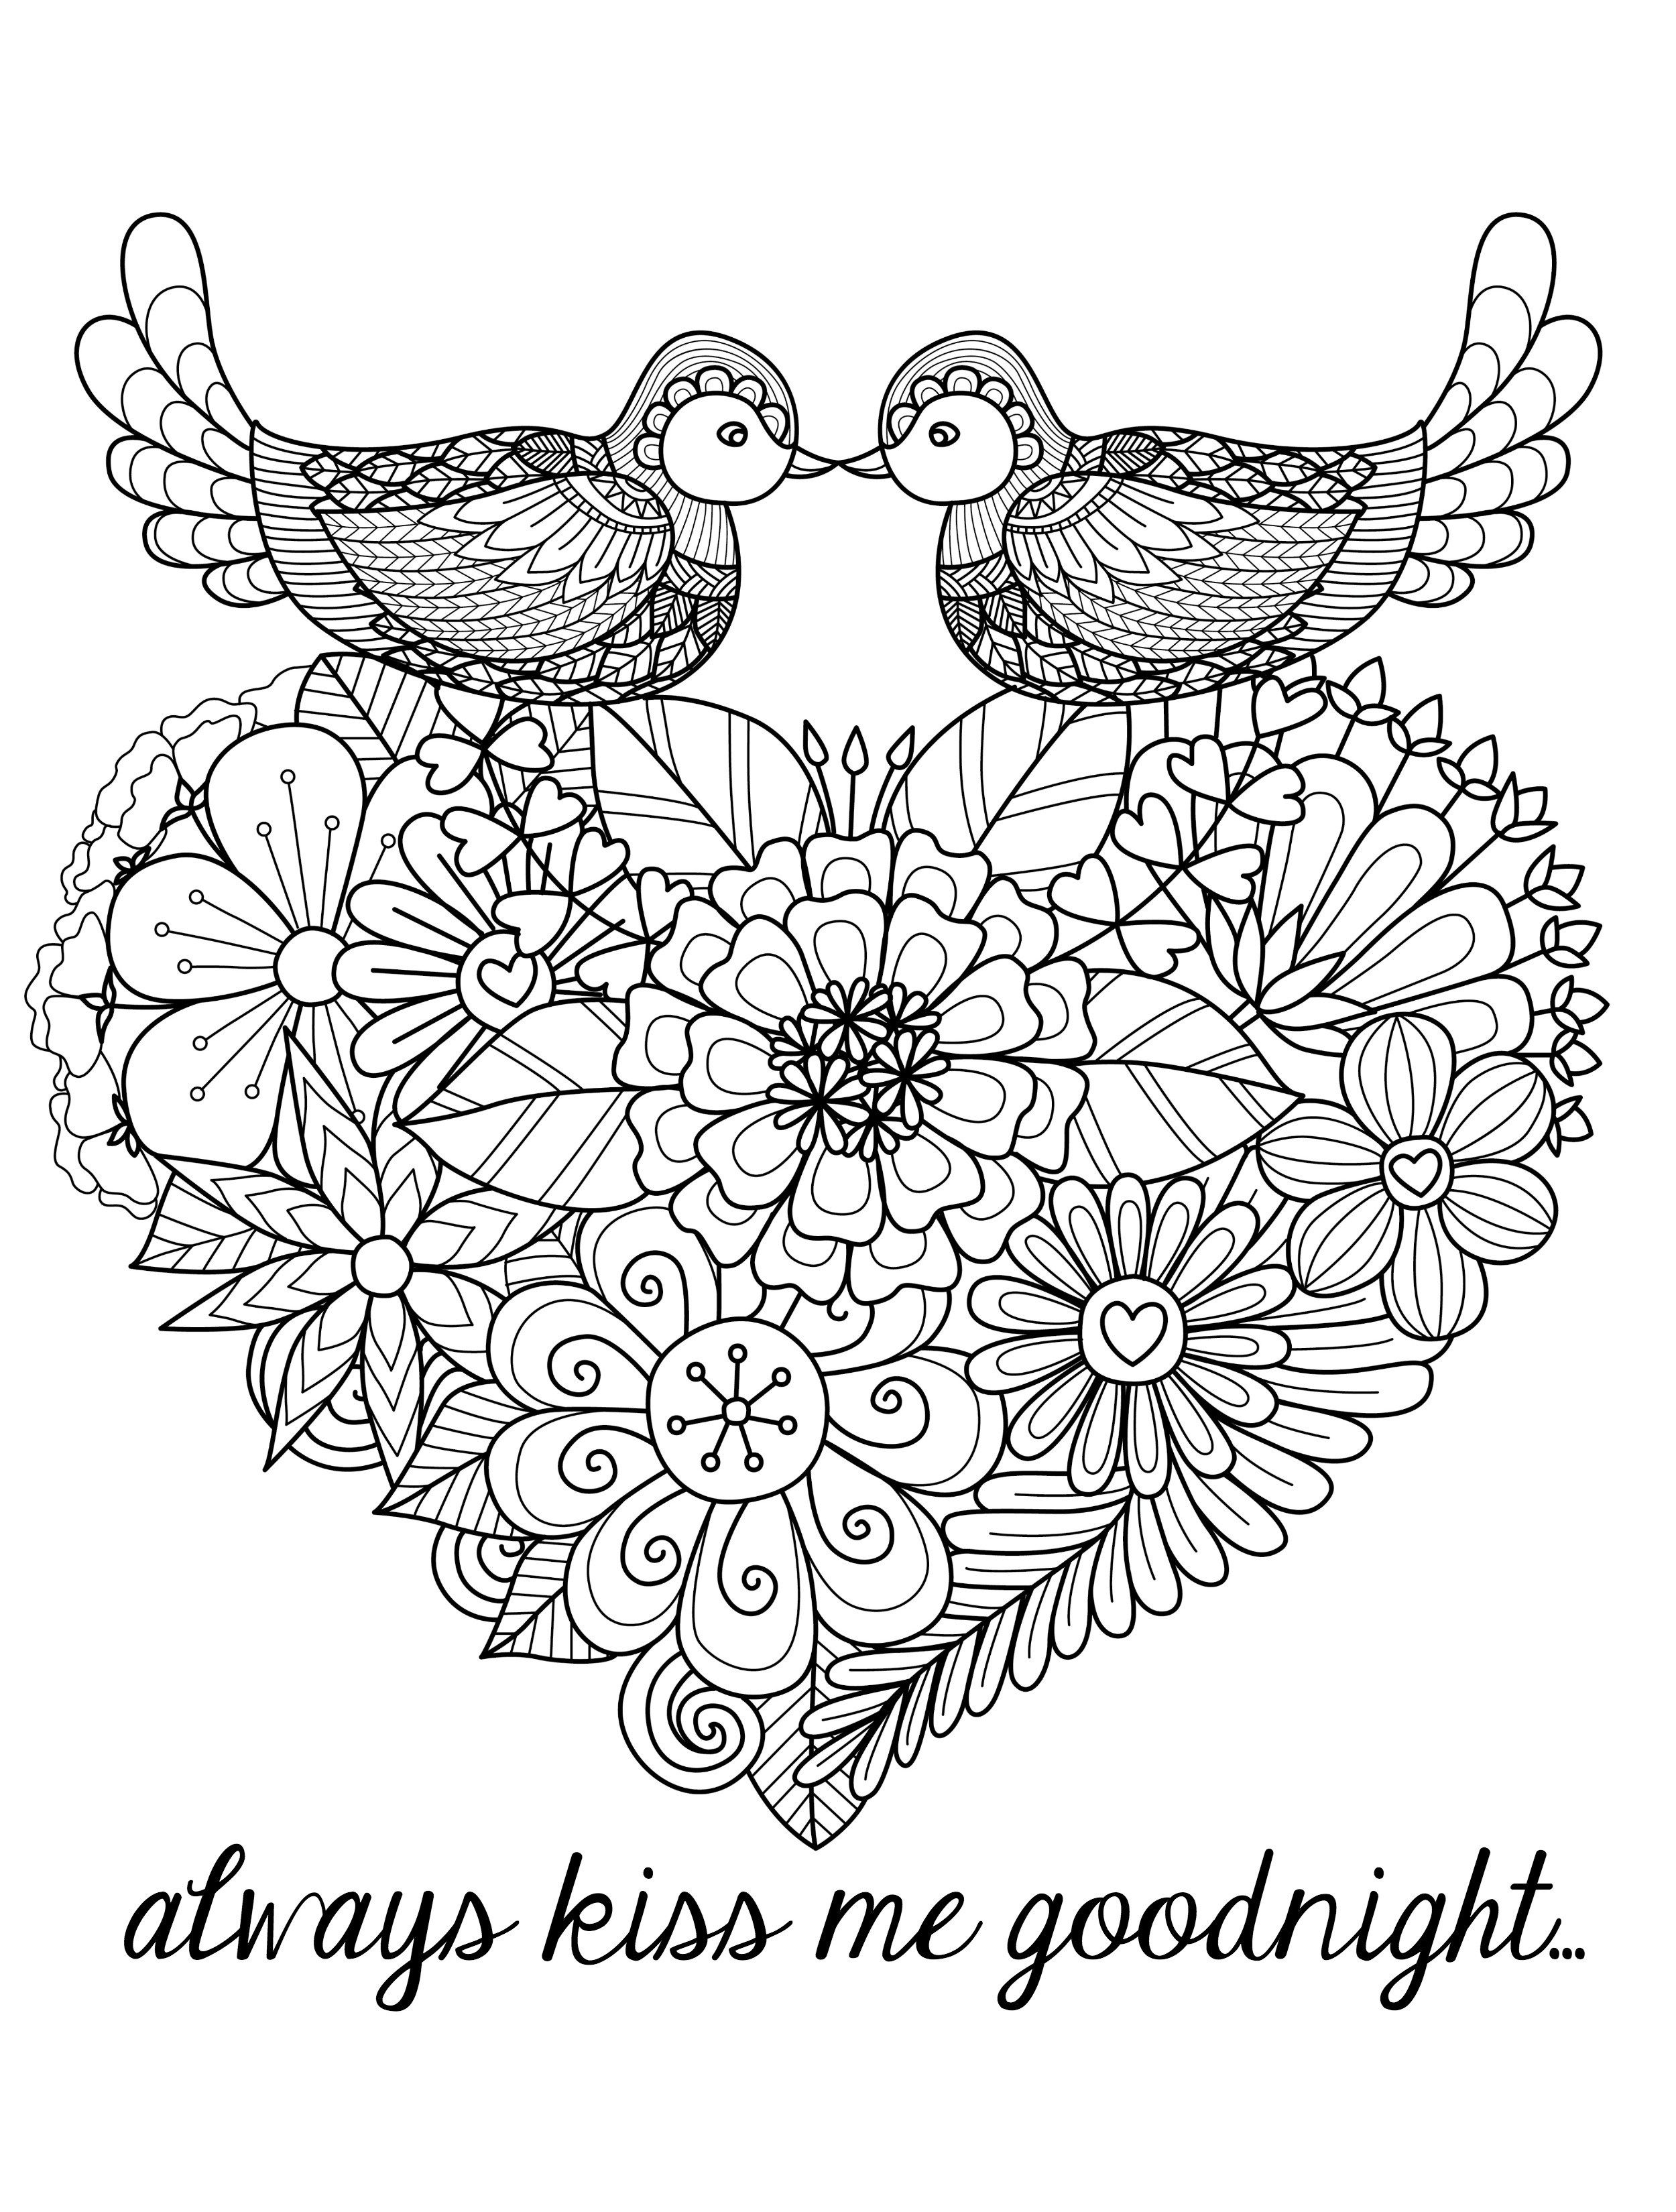 Coloring pages for adults crosses - 20 Free Printable Valentines Adult Coloring Pages